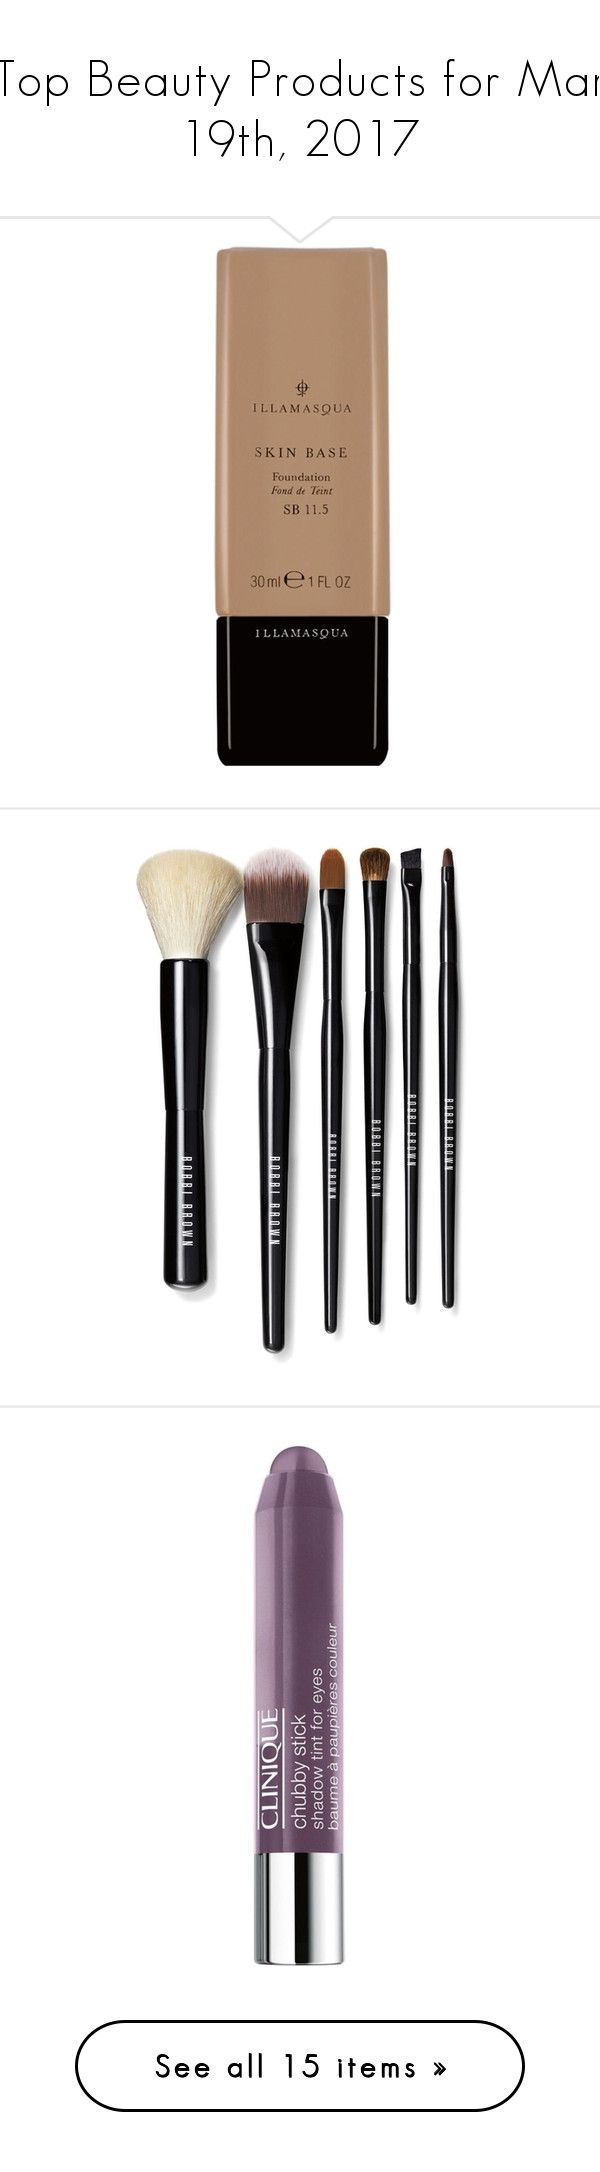 """Top Beauty Products for Mar 19th, 2017"" by polyvore ❤ liked on Polyvore featuring beauty products, makeup, face makeup, foundation, beauty, cosmetics, fillers, illamasqua foundation, illamasqua and makeup tools"